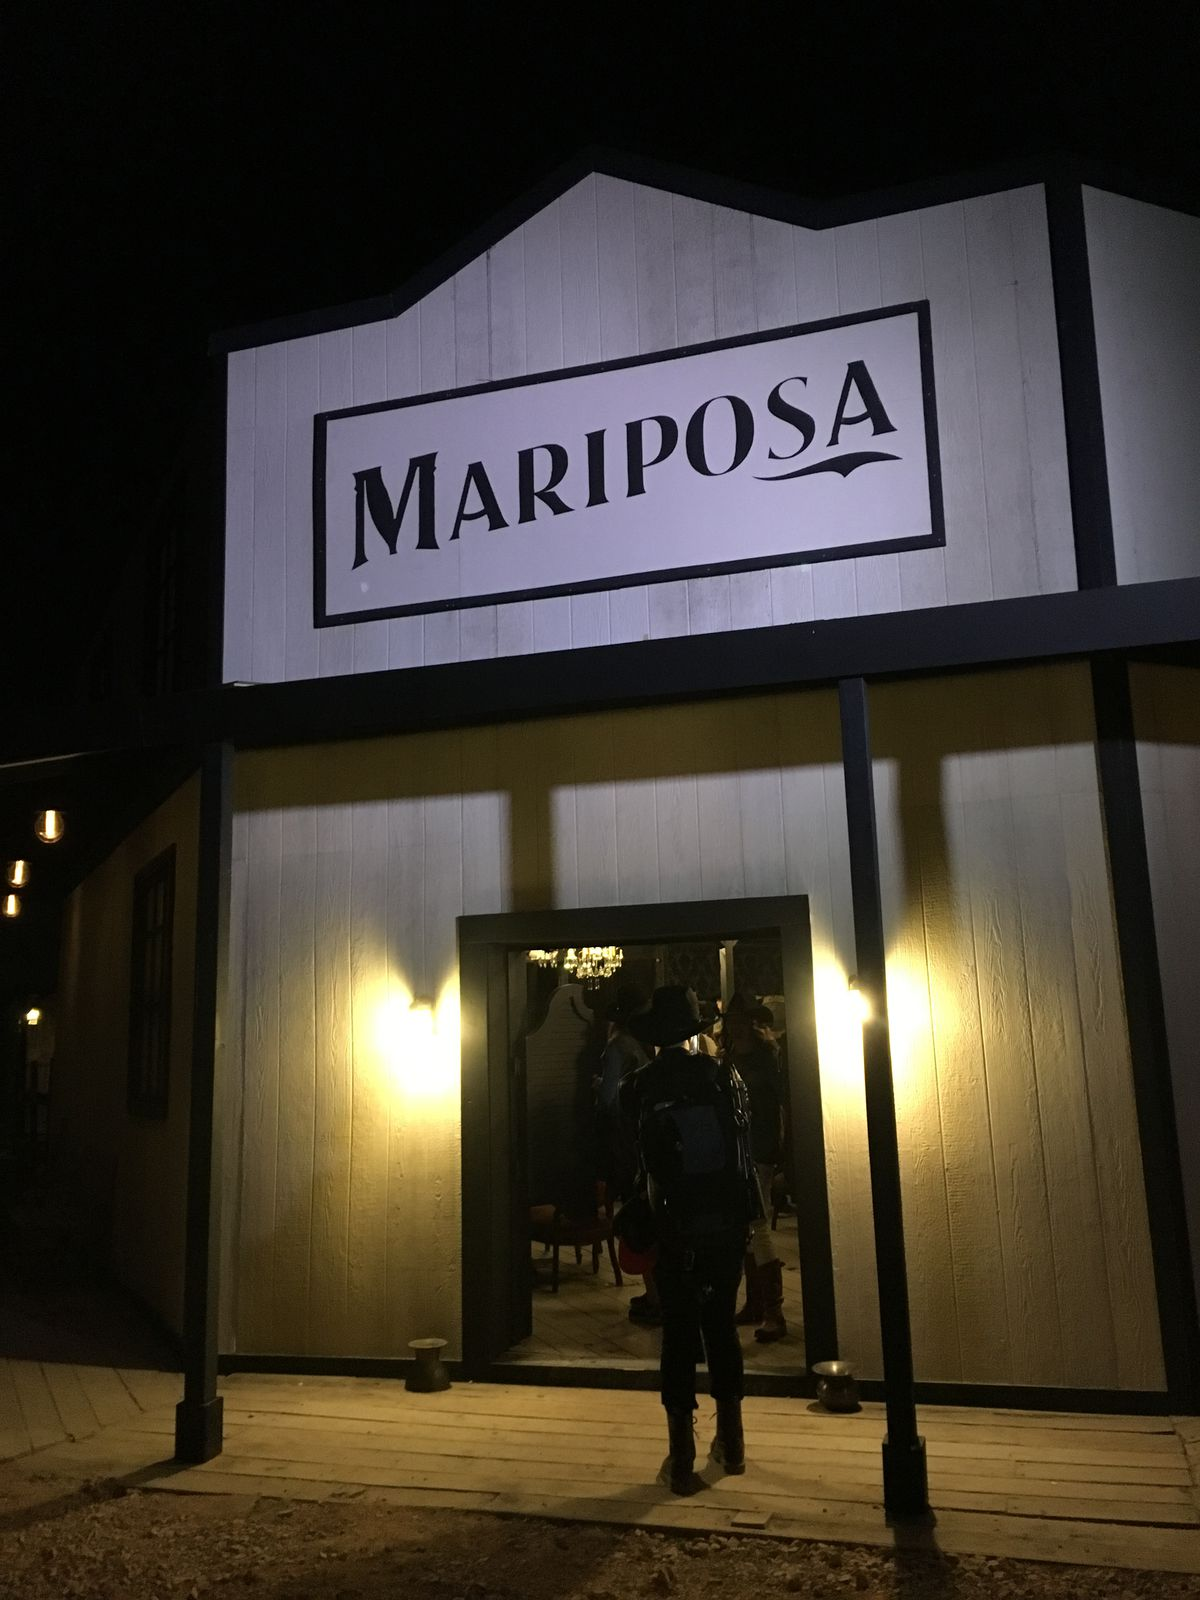 The entrance to the Mariposa Saloon